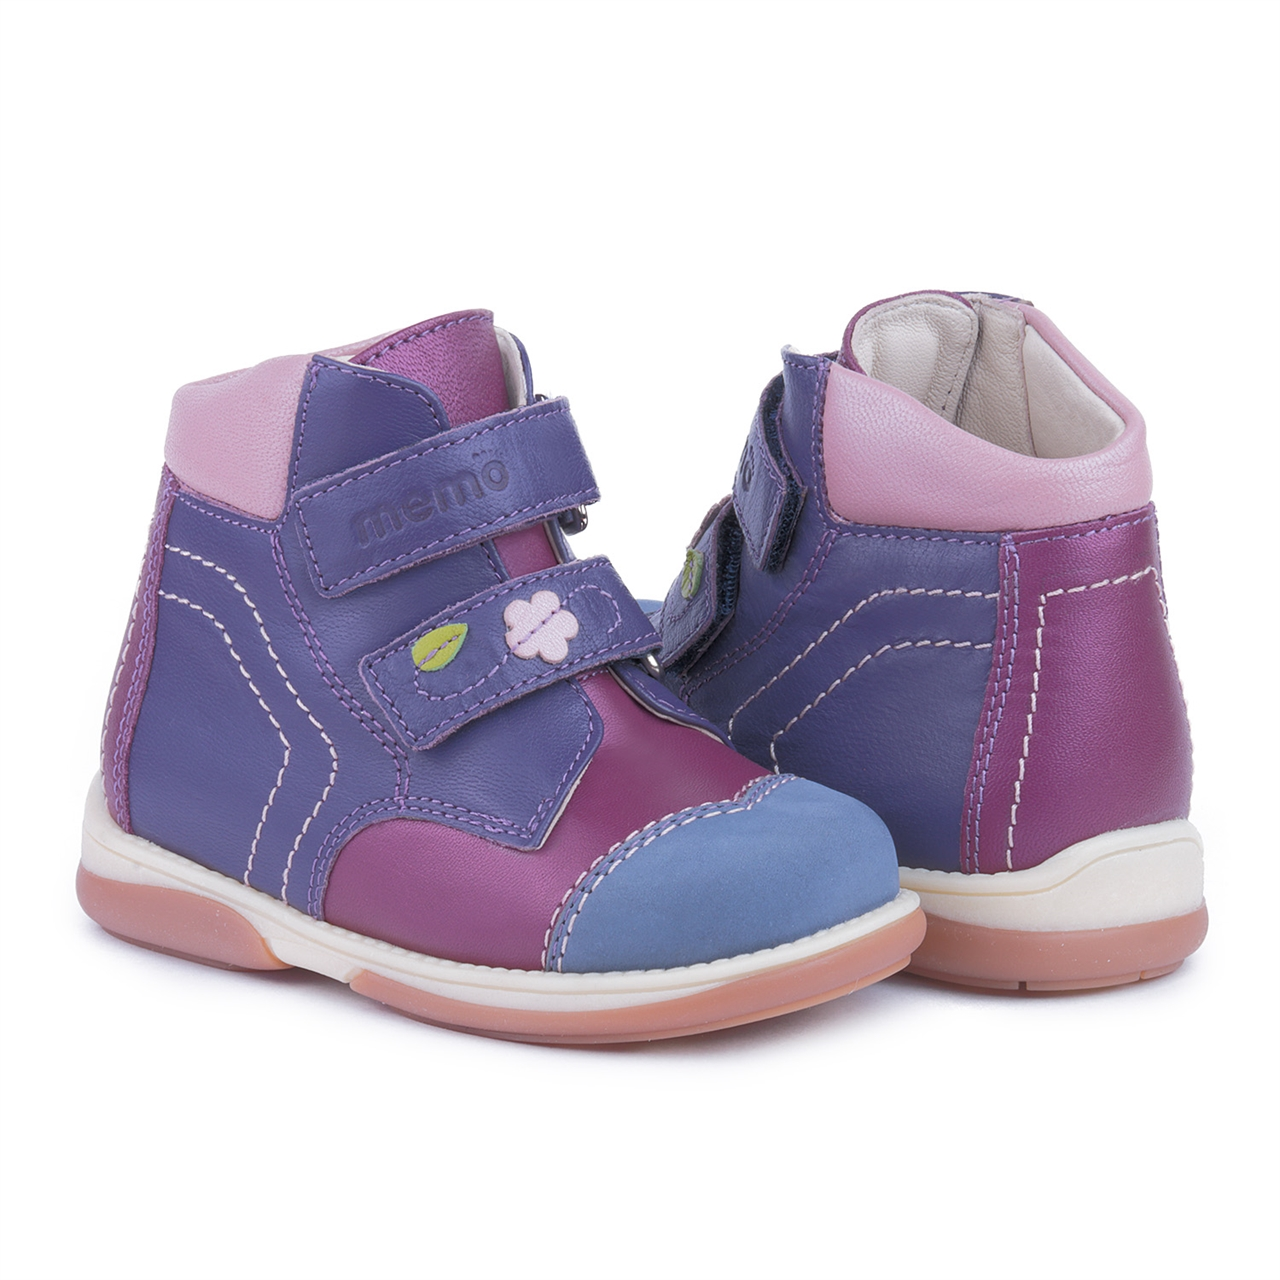 Toddler High Top Orthopedic Shoes